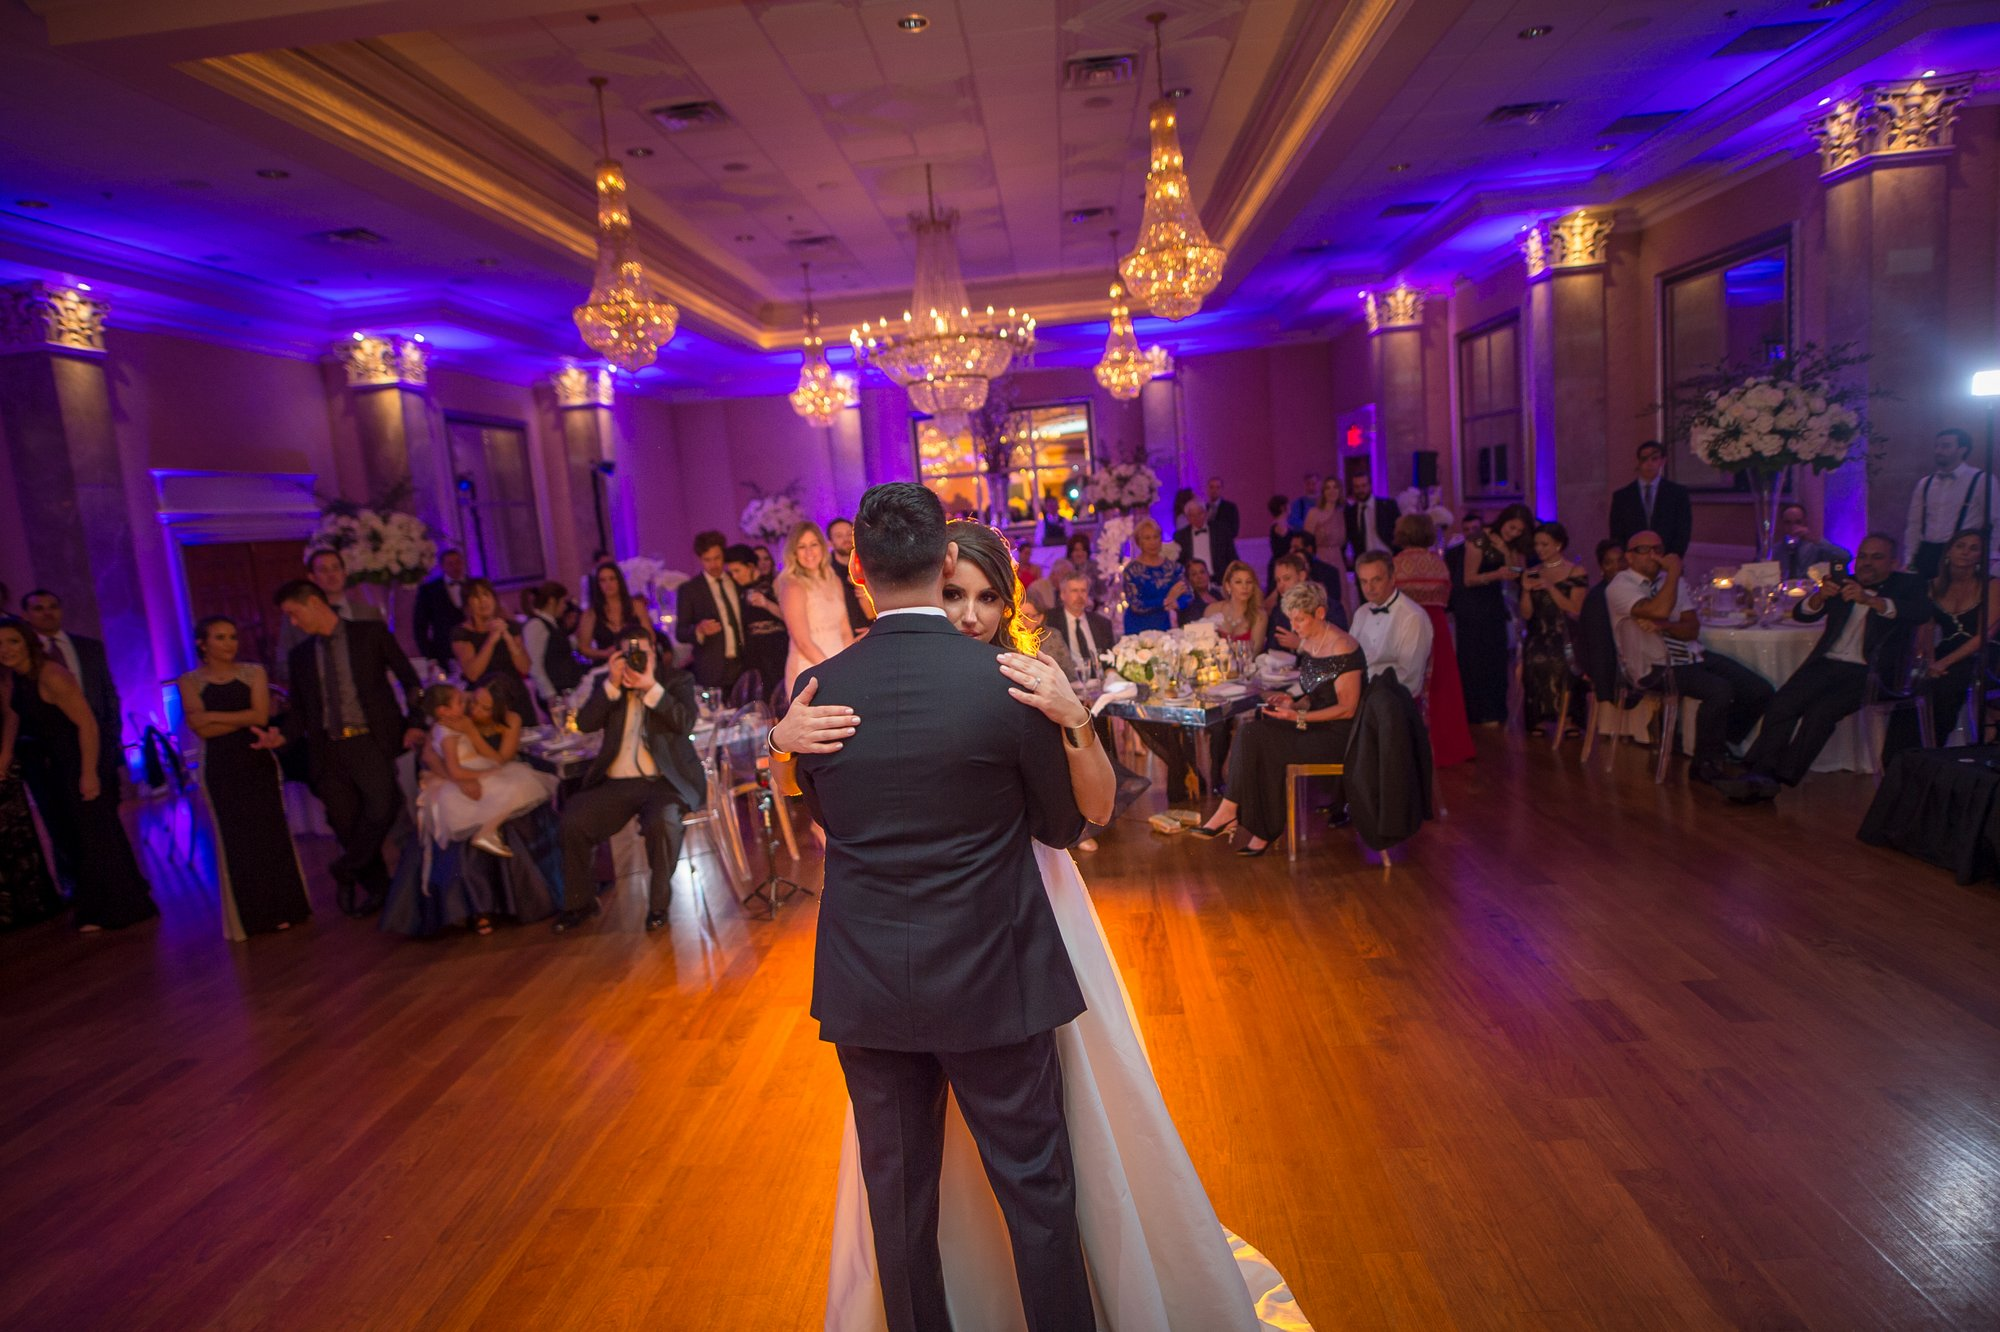 Joanna + Jonathan | Greek Wedding in Miami, Miami Wedding Photographers | Häring Photography, Indian Wedding Photographer in Florida, Best Muslim, Hindu - South East Asian Wedding Photographers